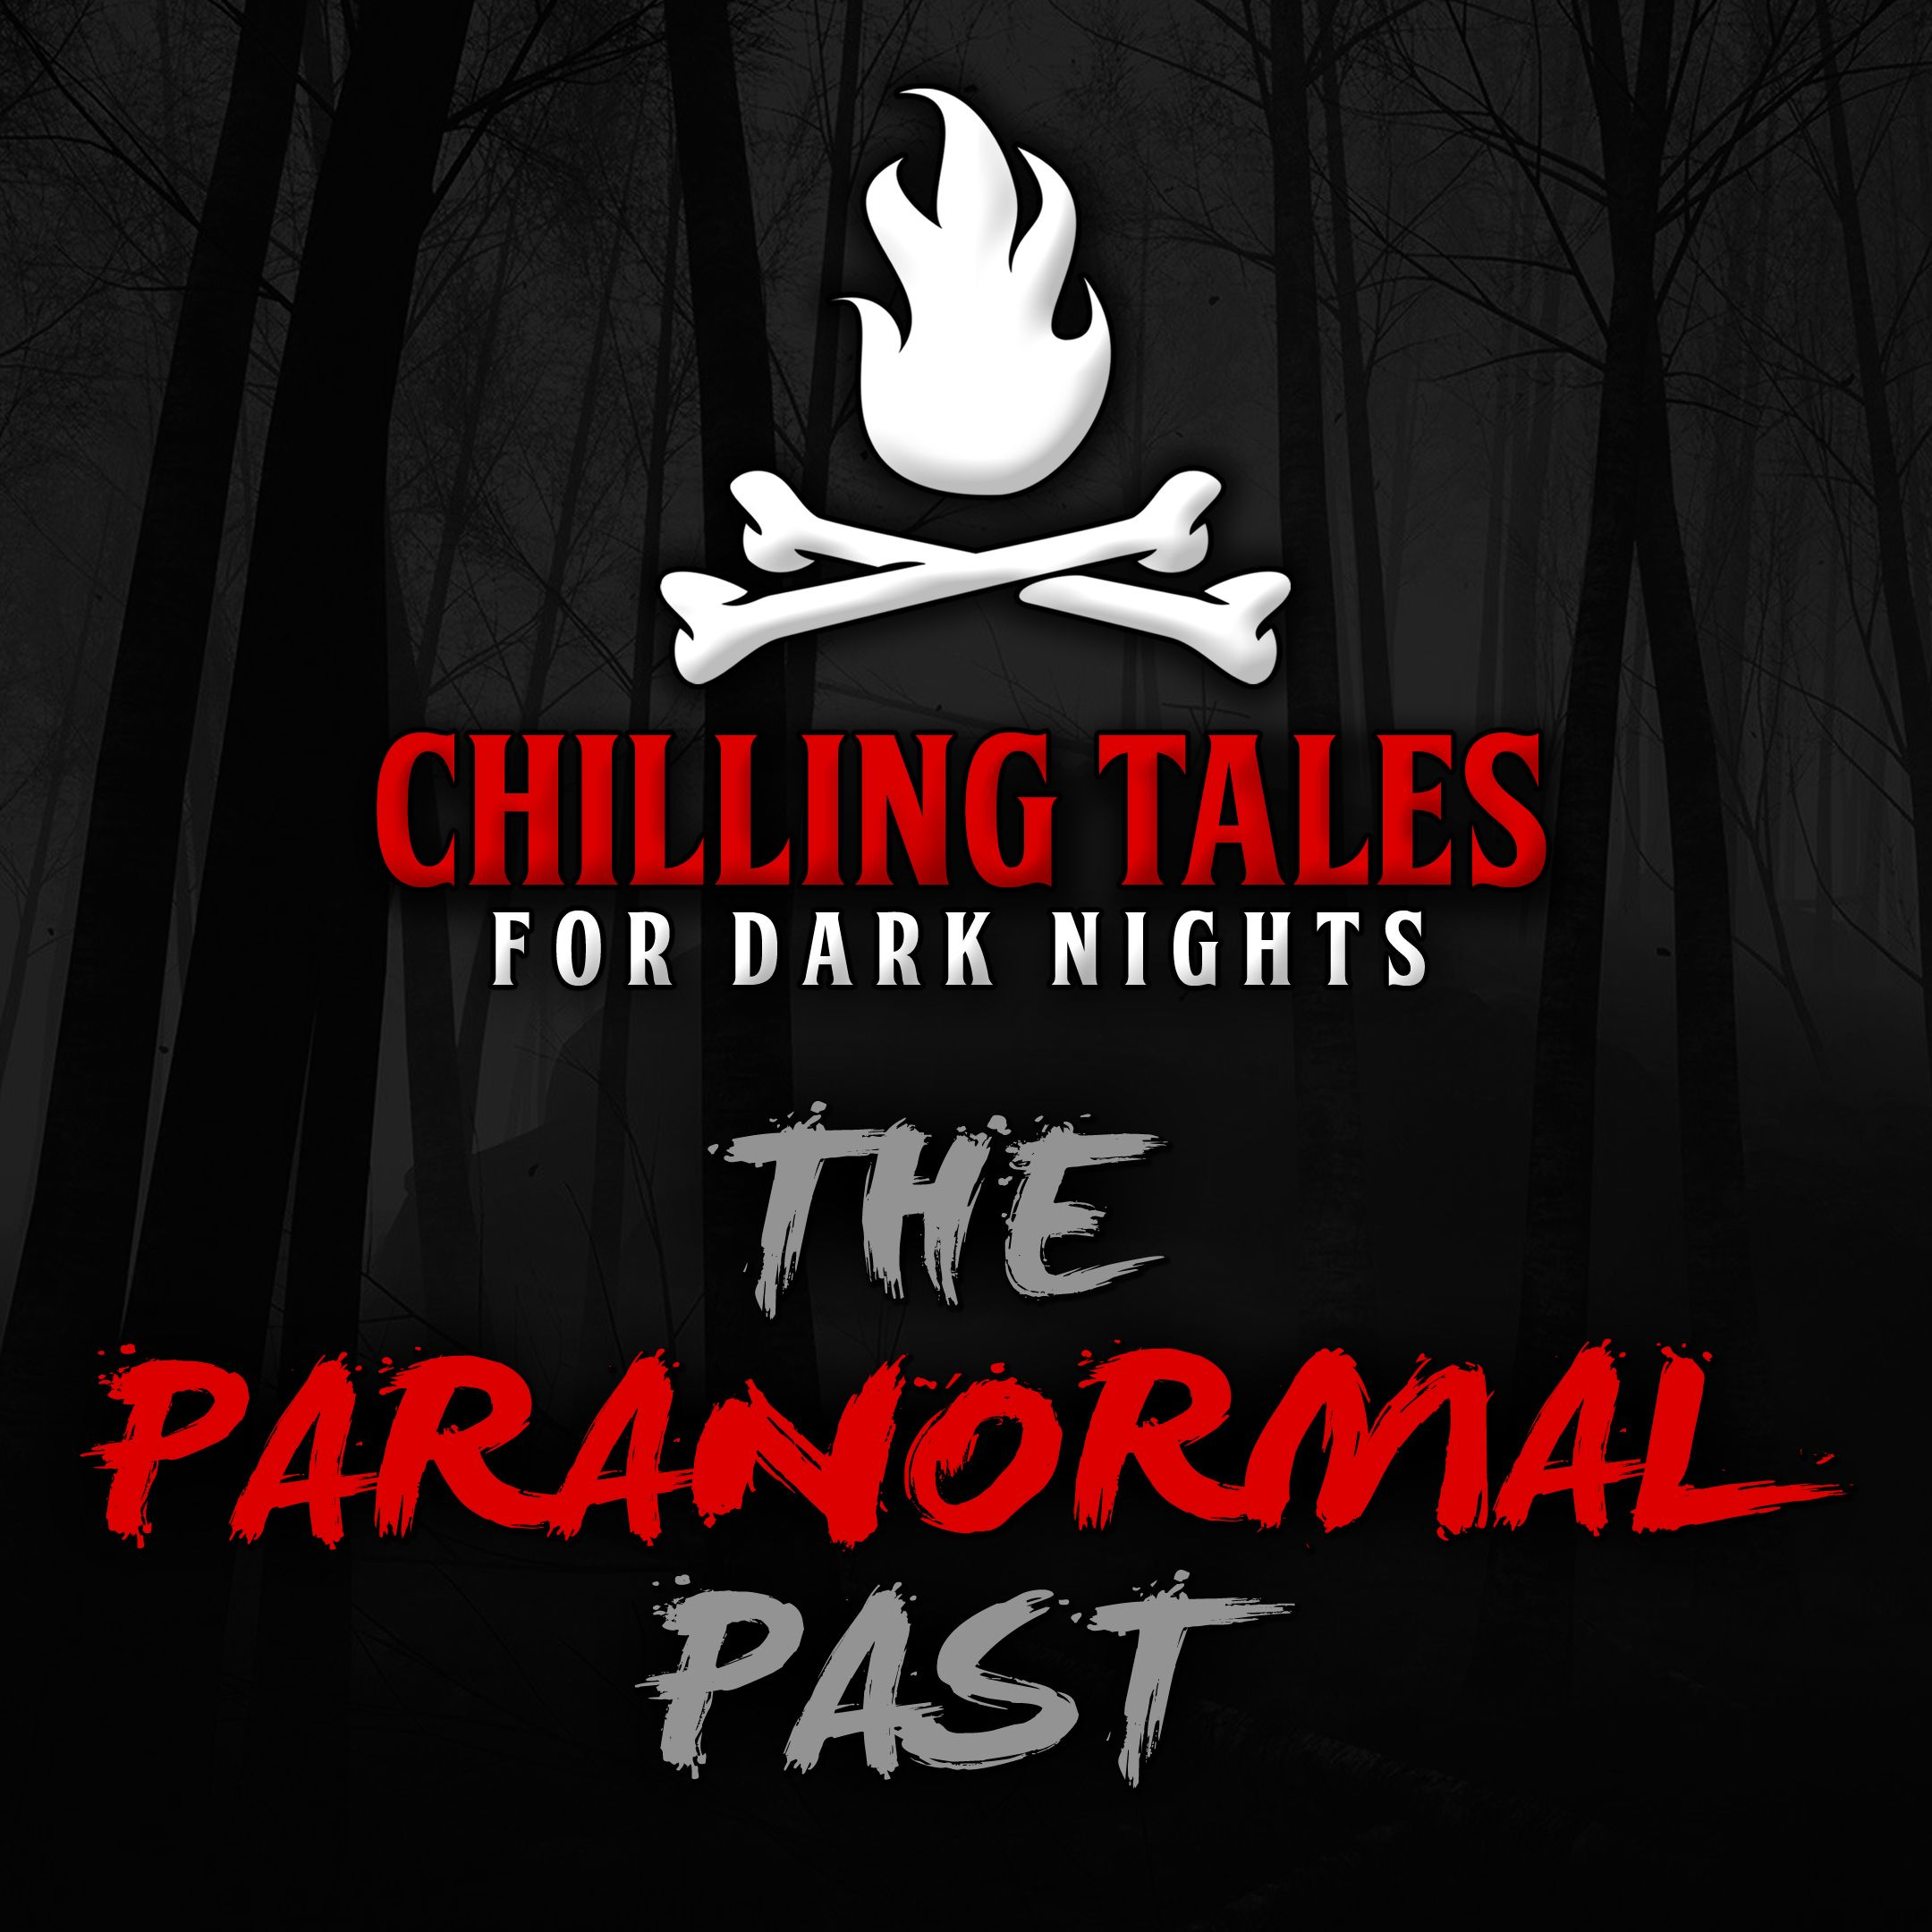 76: The Paranormal Past – Chilling Tales for Dark Nights